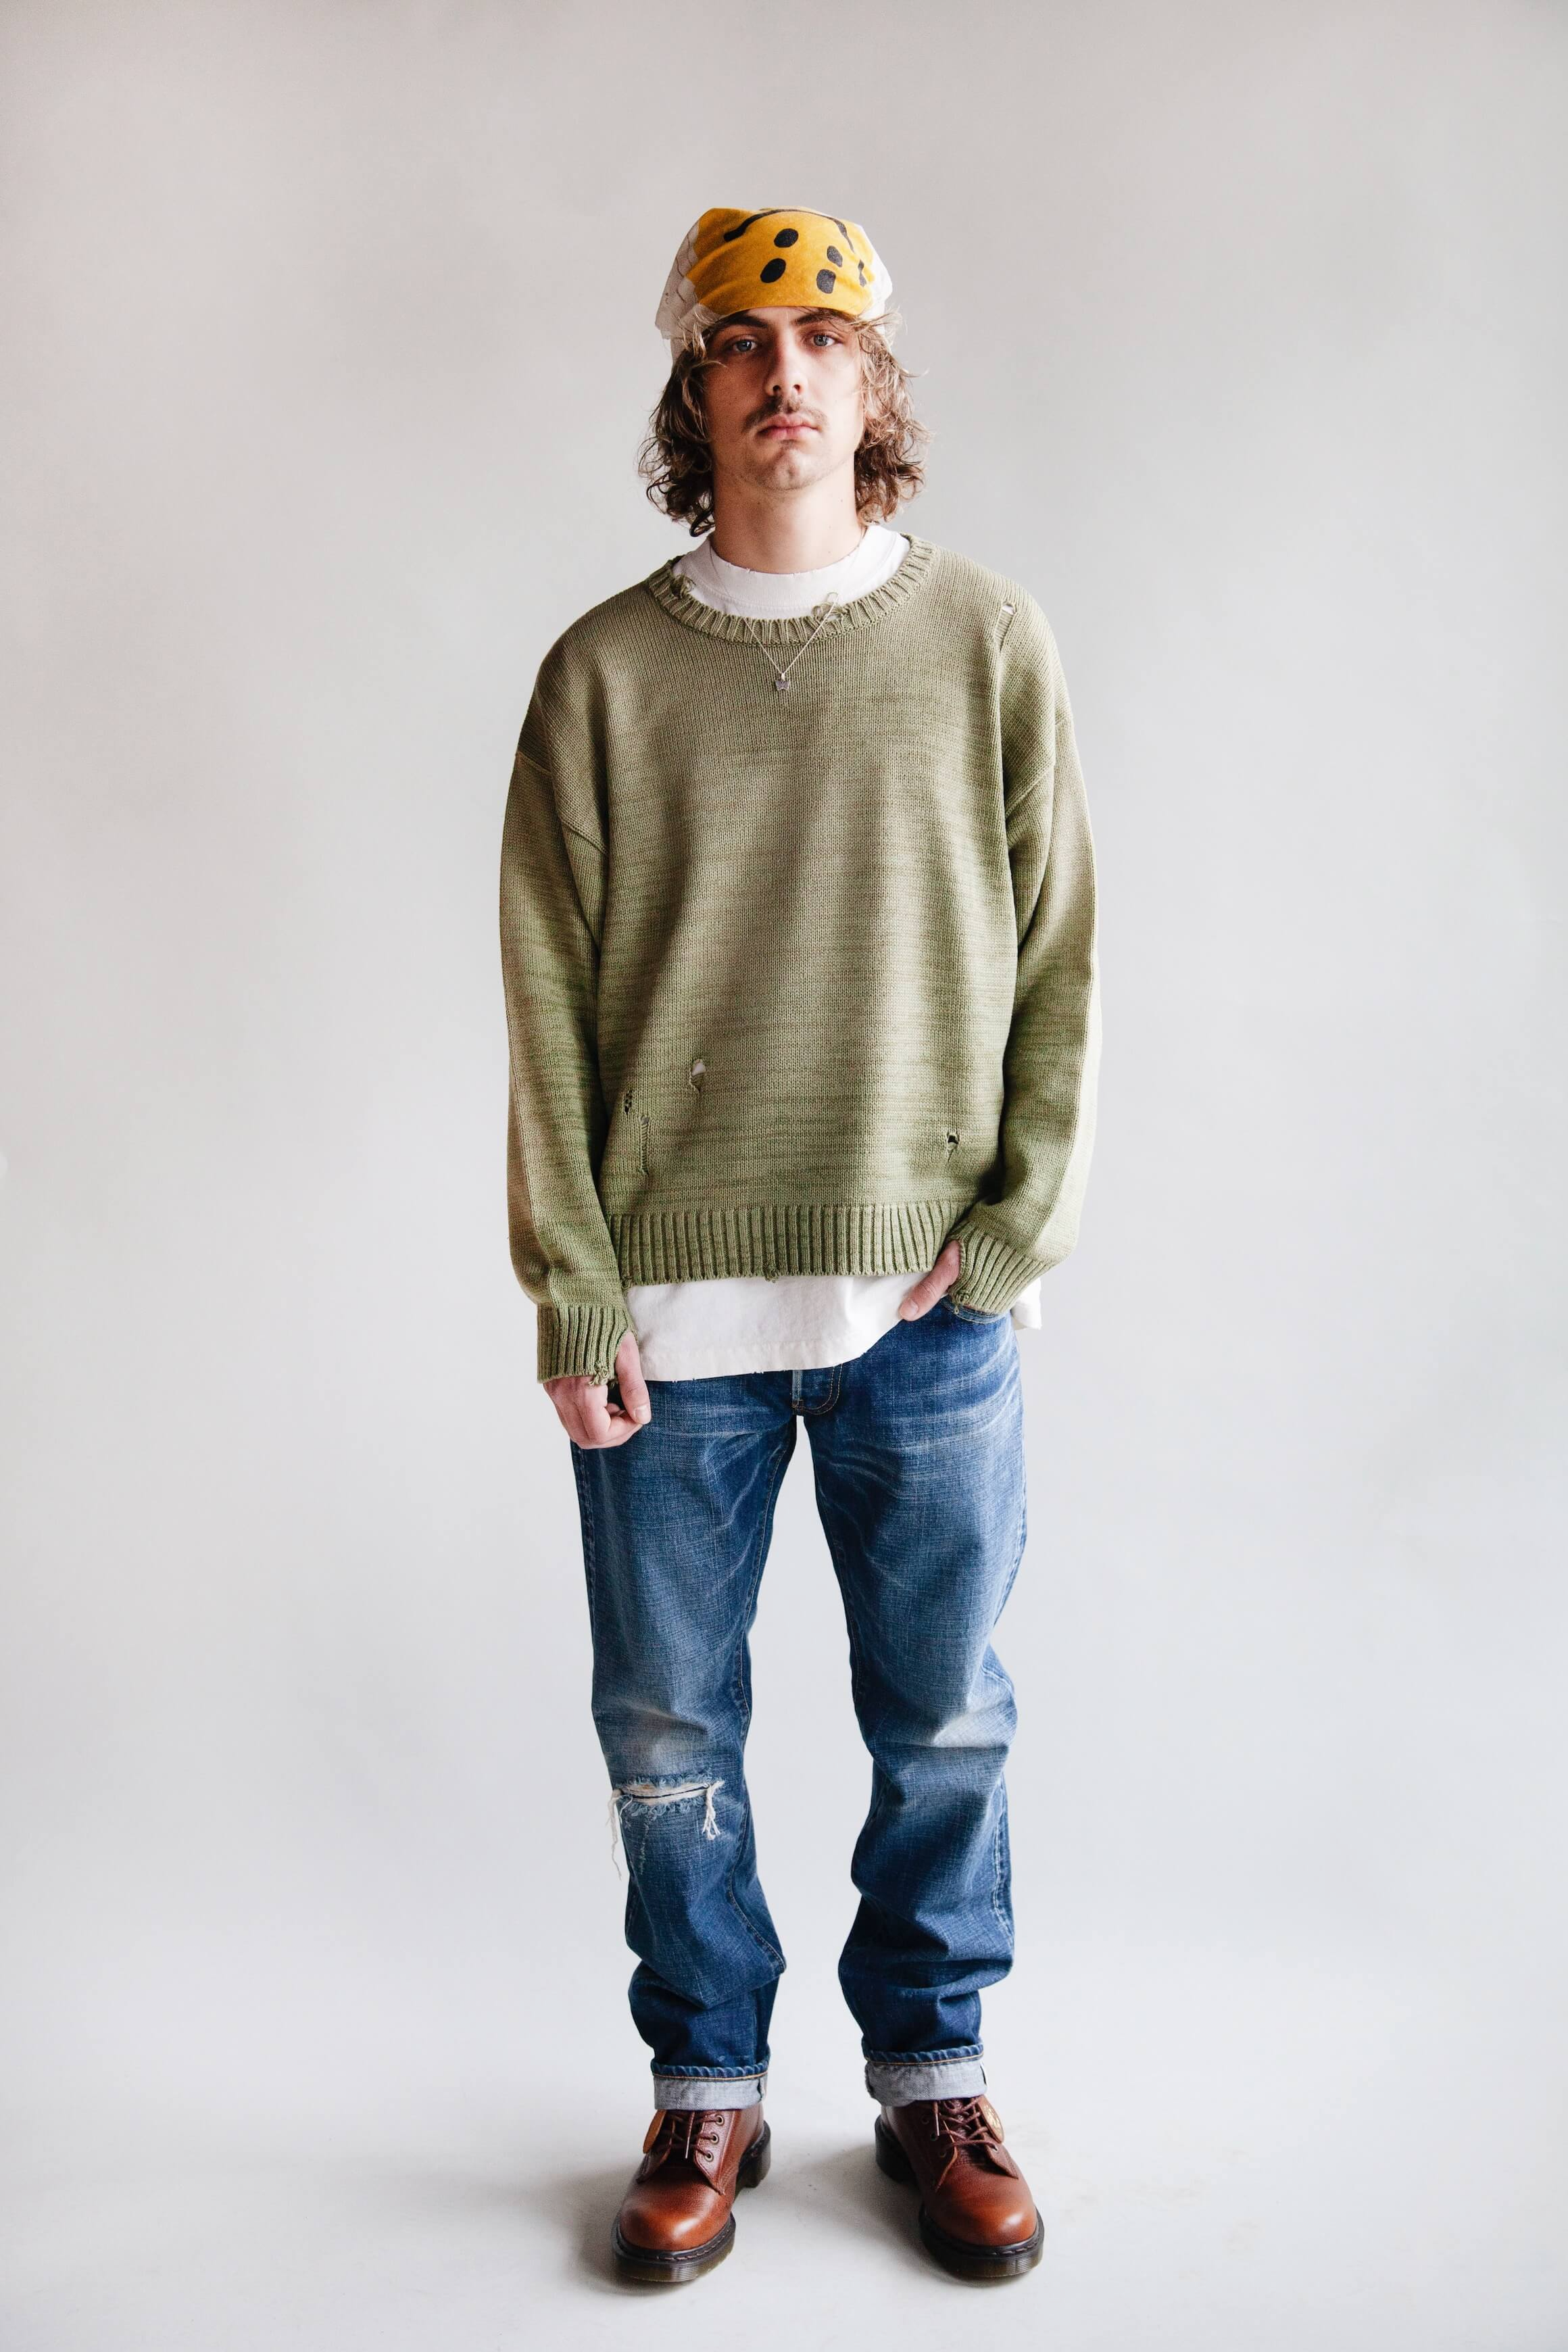 kapital clothing japan 5g cotton knit smilie crew sweater, canoe club tee, visvim social sculpture 10 jeans and dr. martens 1460 boots made in england on body